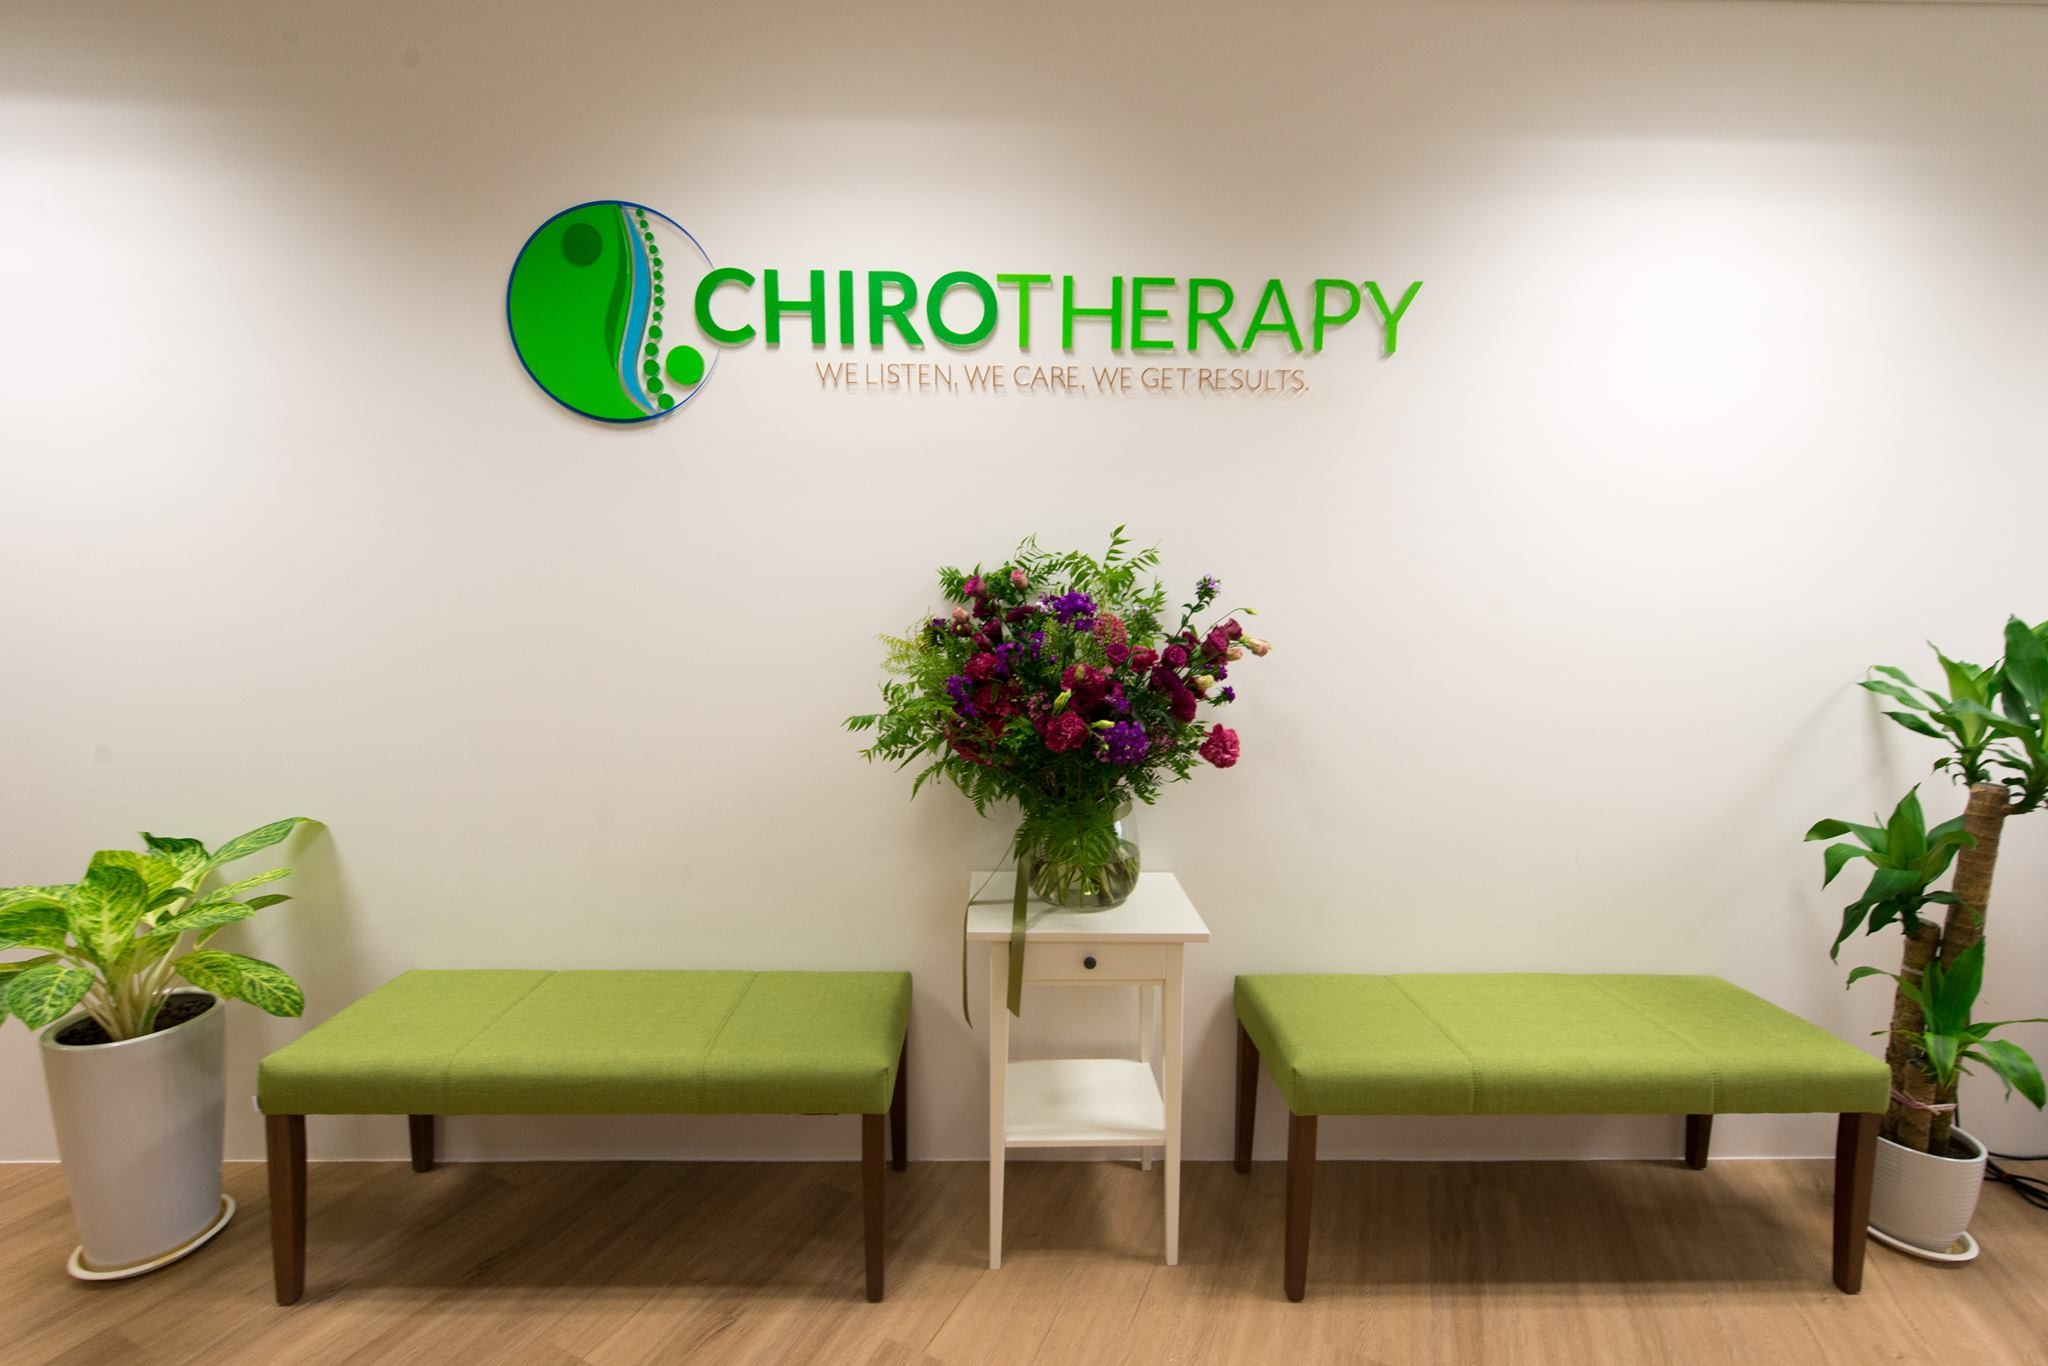 Chirotherapy SG